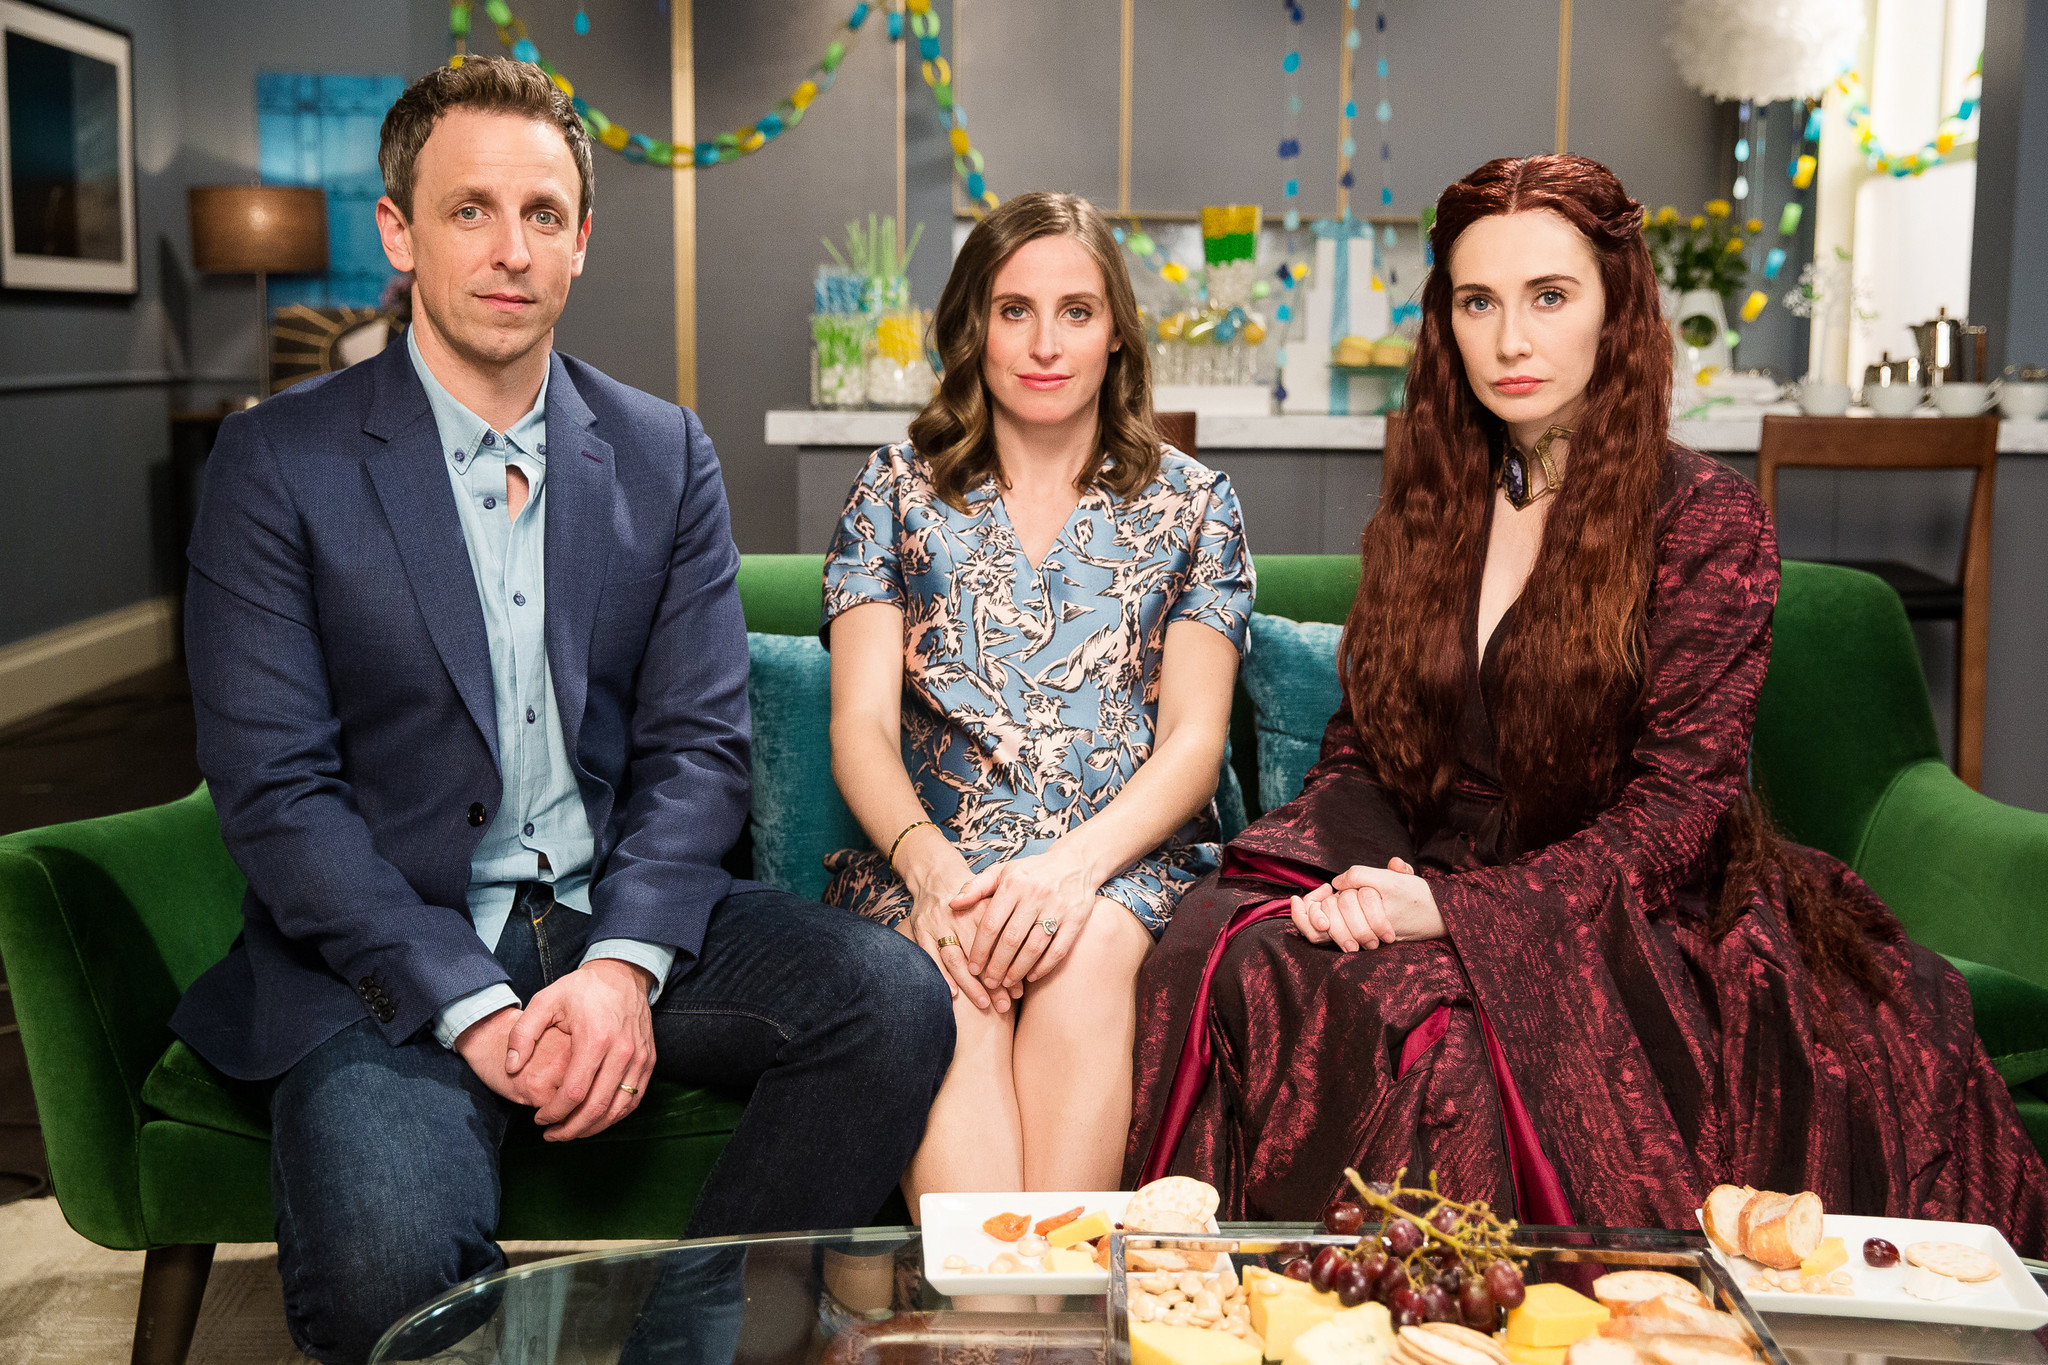 Watch Seth Meyers host the Red Wedding of baby showers with